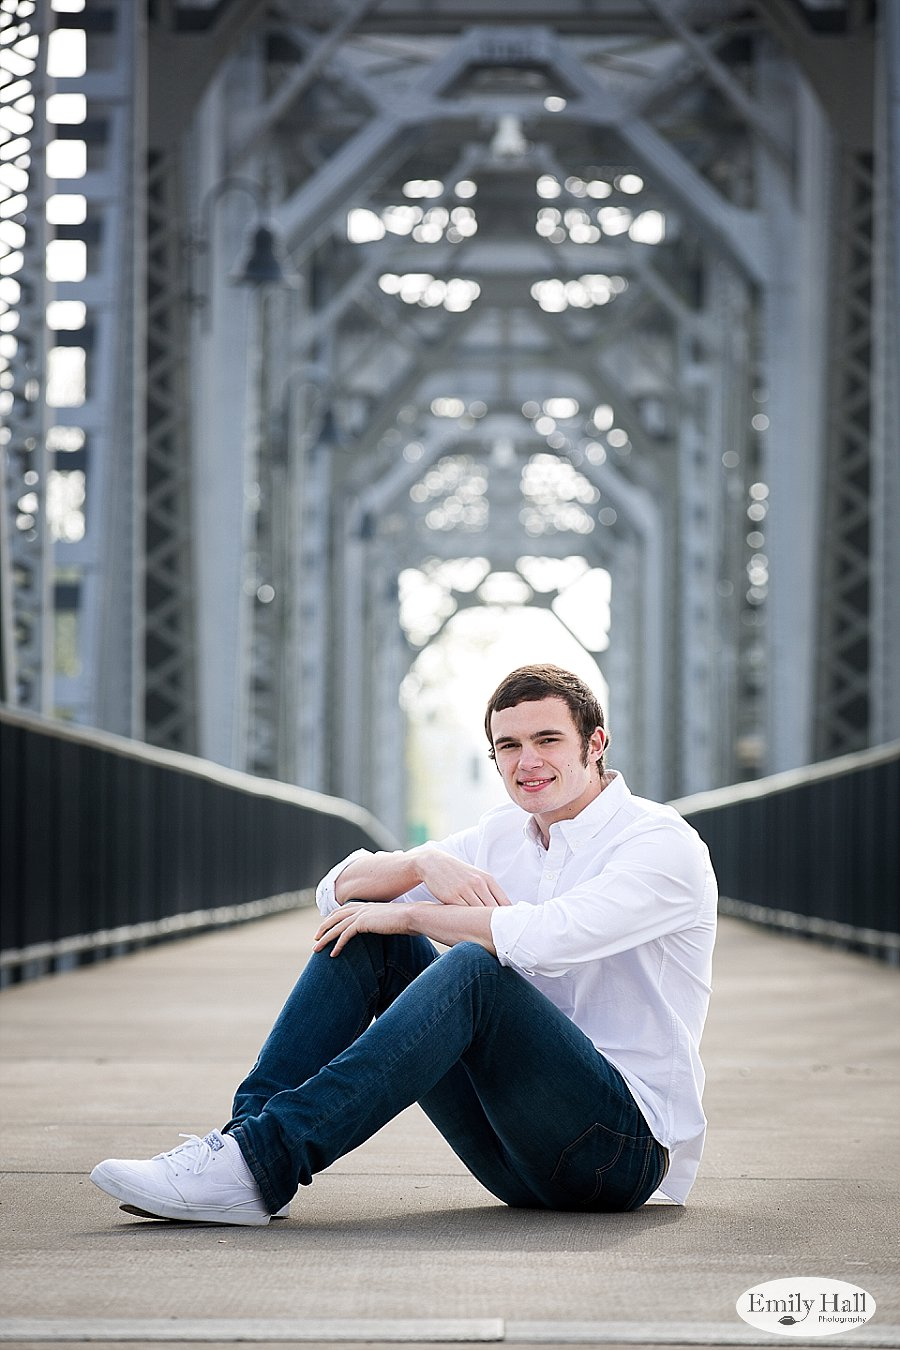 Emily Hall Photography - Albany Senior Pictures-9425.jpg